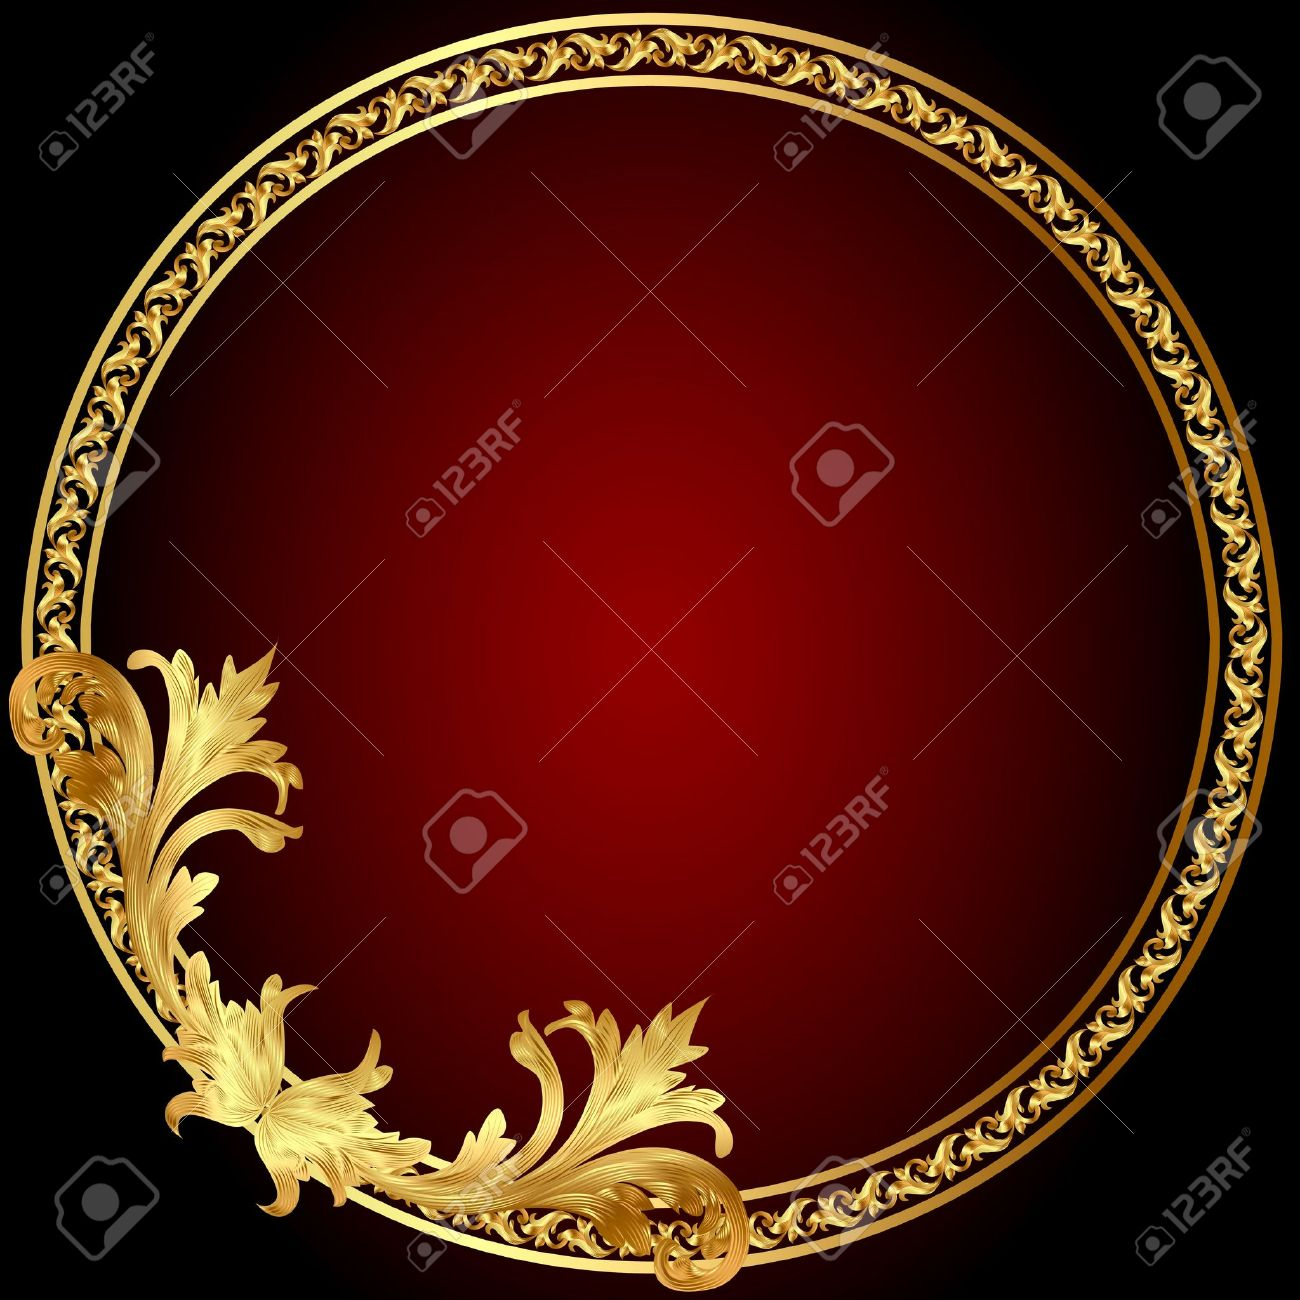 illustration frame with gold(en) pattern on circle Stock Vector - 11929495